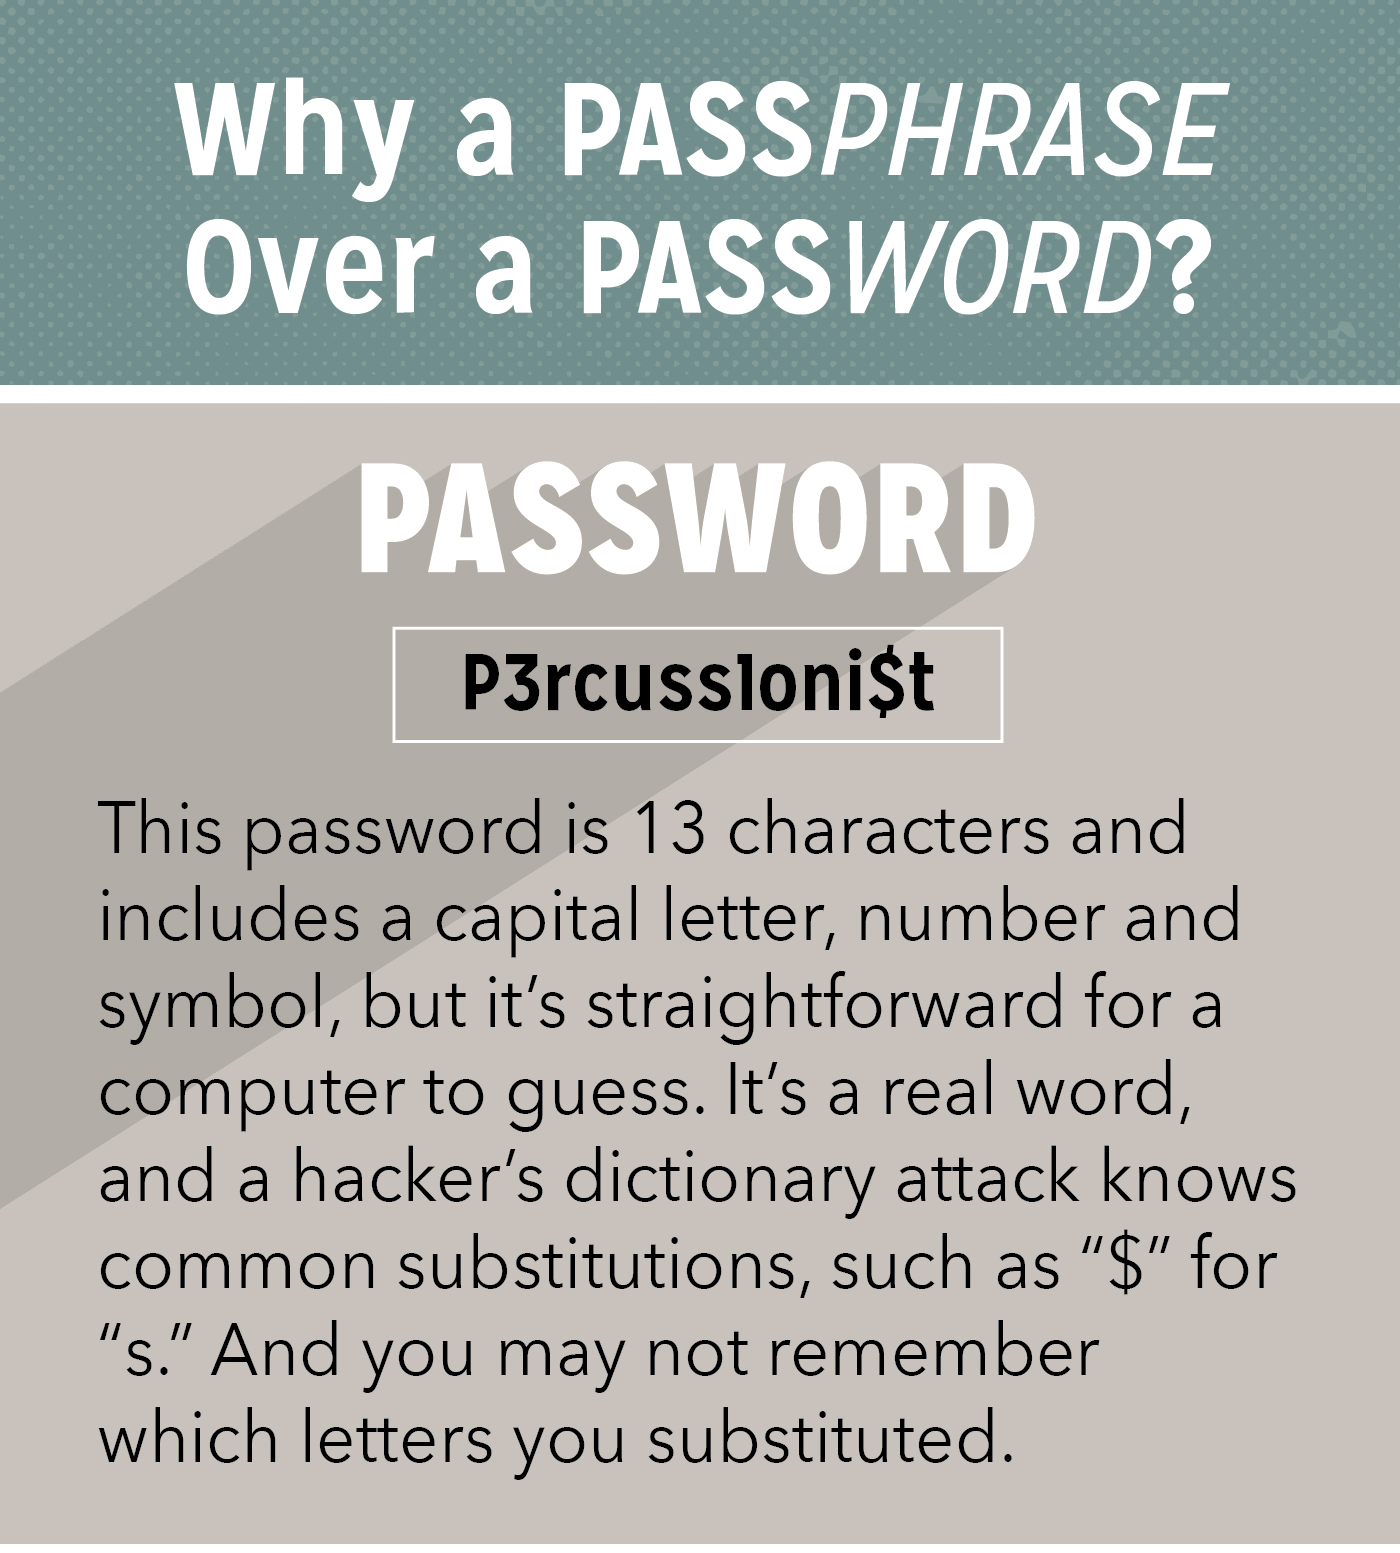 creating-strong-password-vs-passphrase-mobile-1